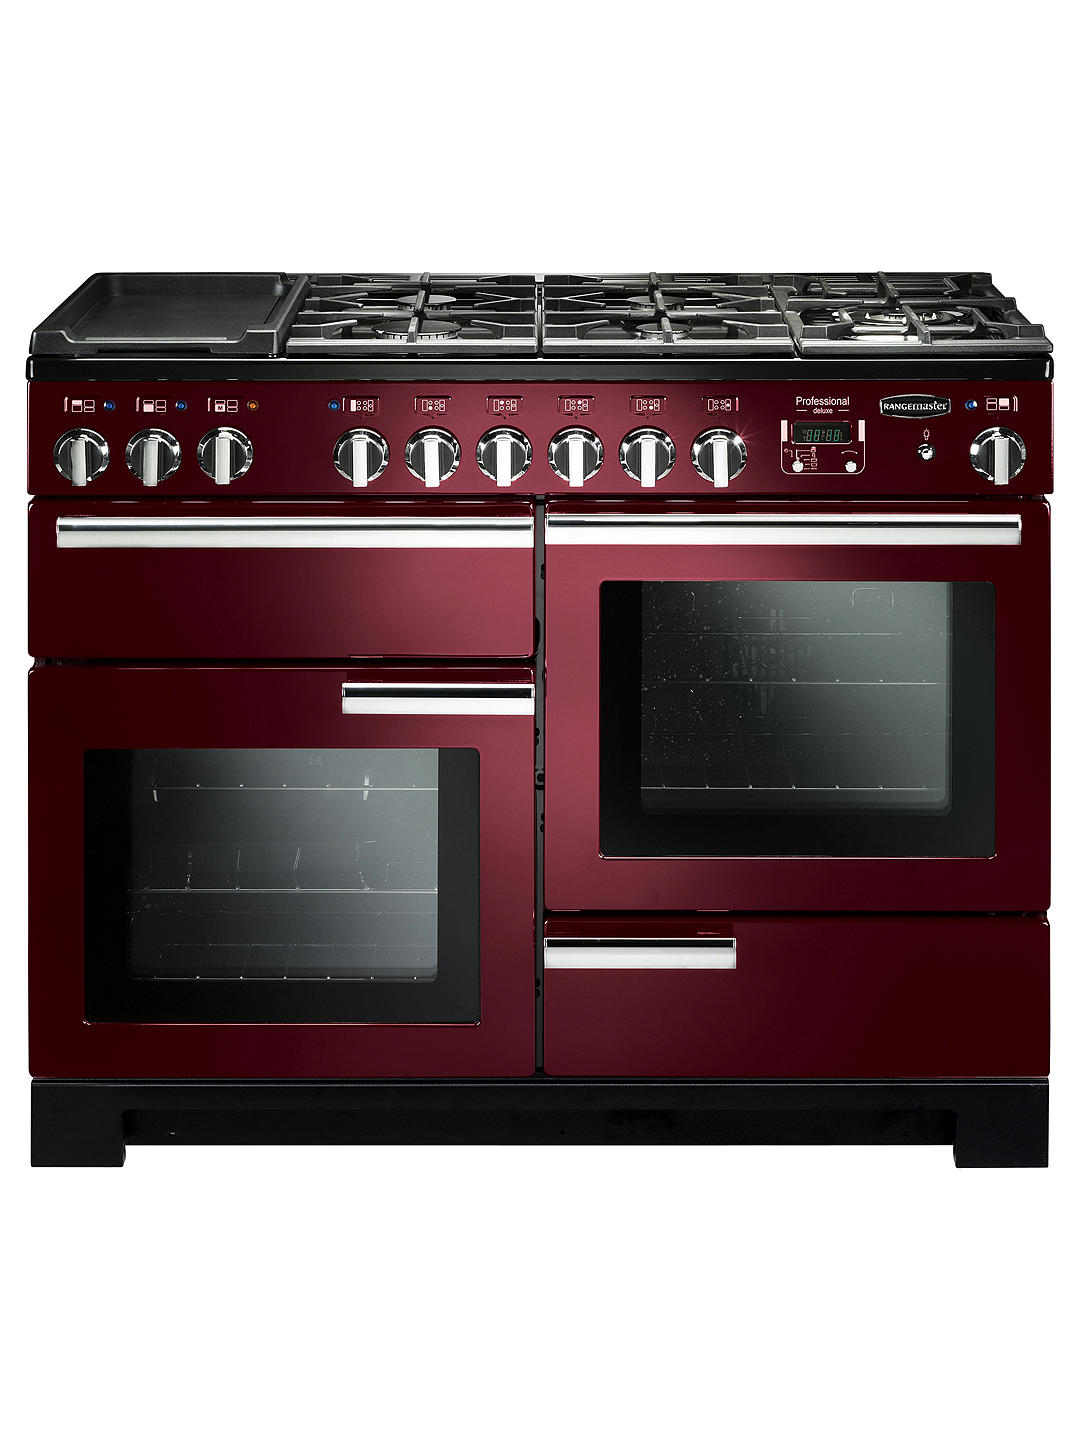 Buy Rangemaster Professional Deluxe 110 Dual Fuel Range Cooker, Cranberry/Chrome Trim Online at johnlewis.com